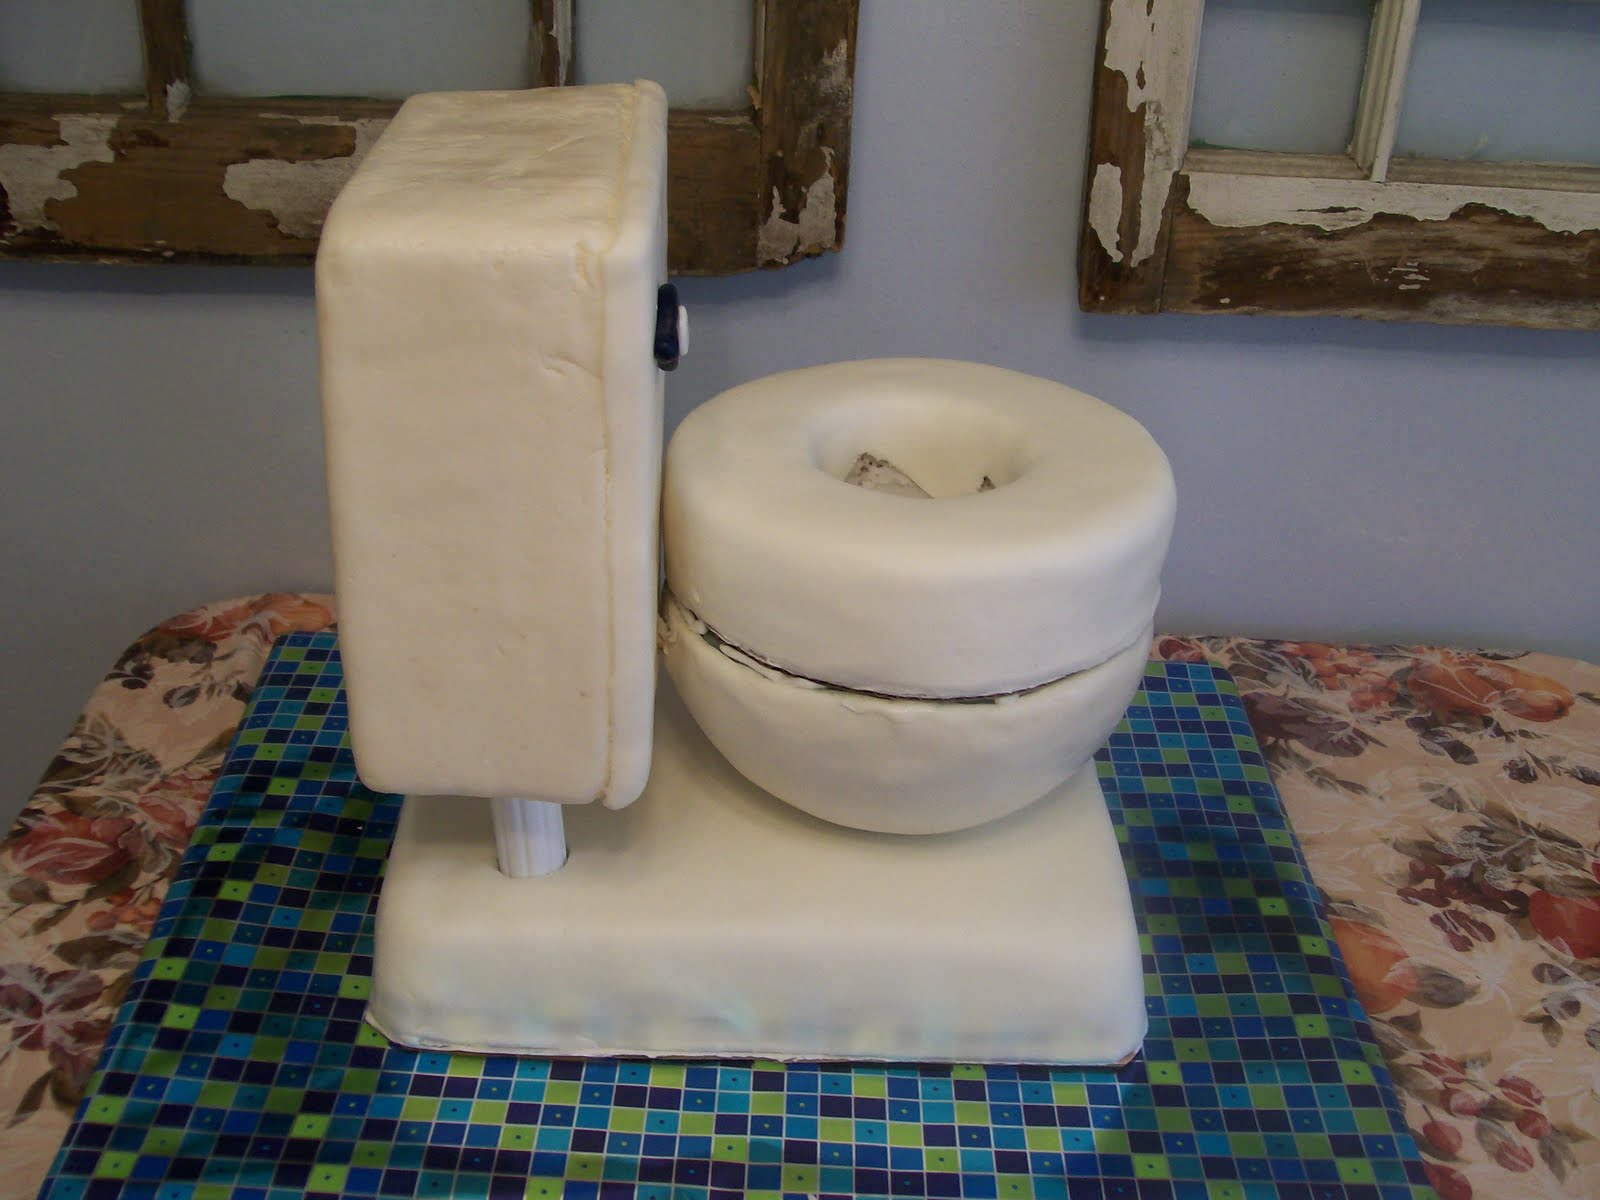 Cake Images Of Toilet : Let Them Eat Cake!: Toilet Cake